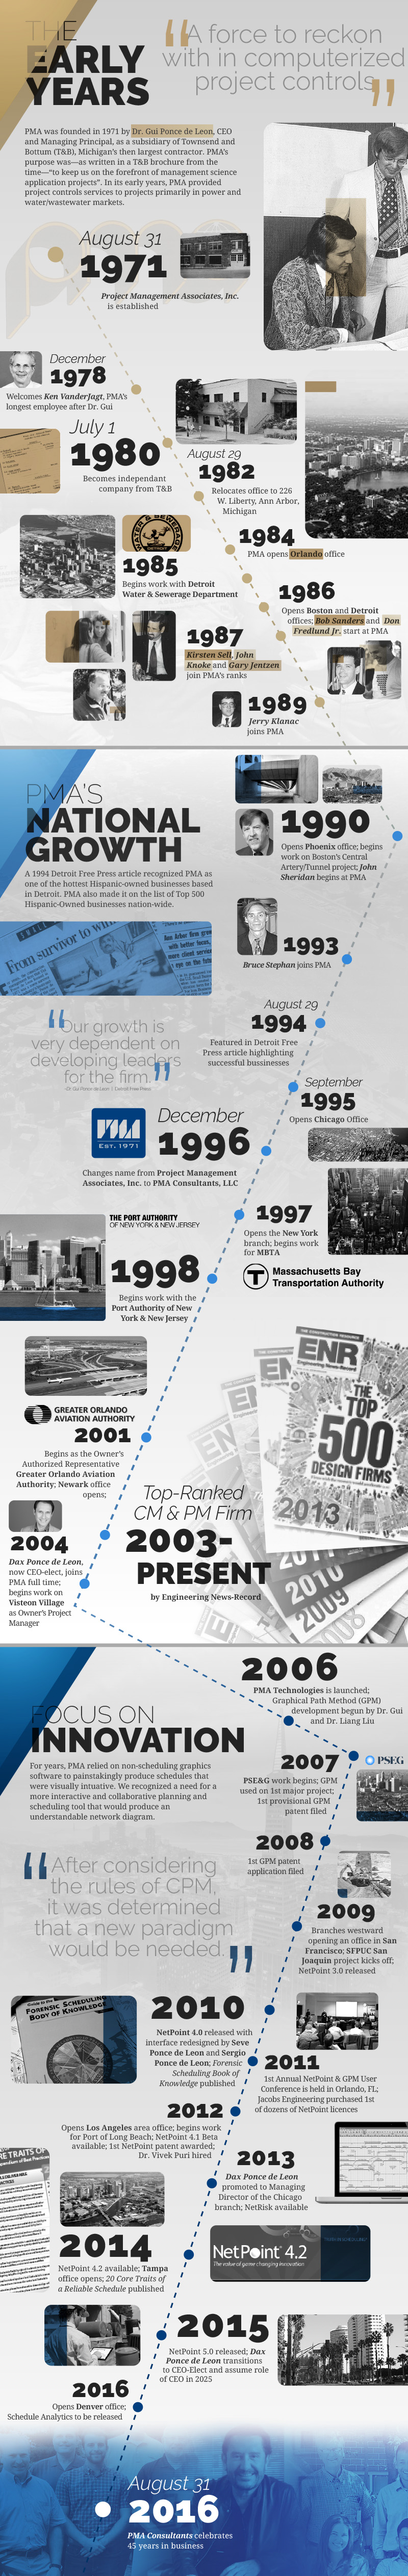 PMA celebrates 45 years of business